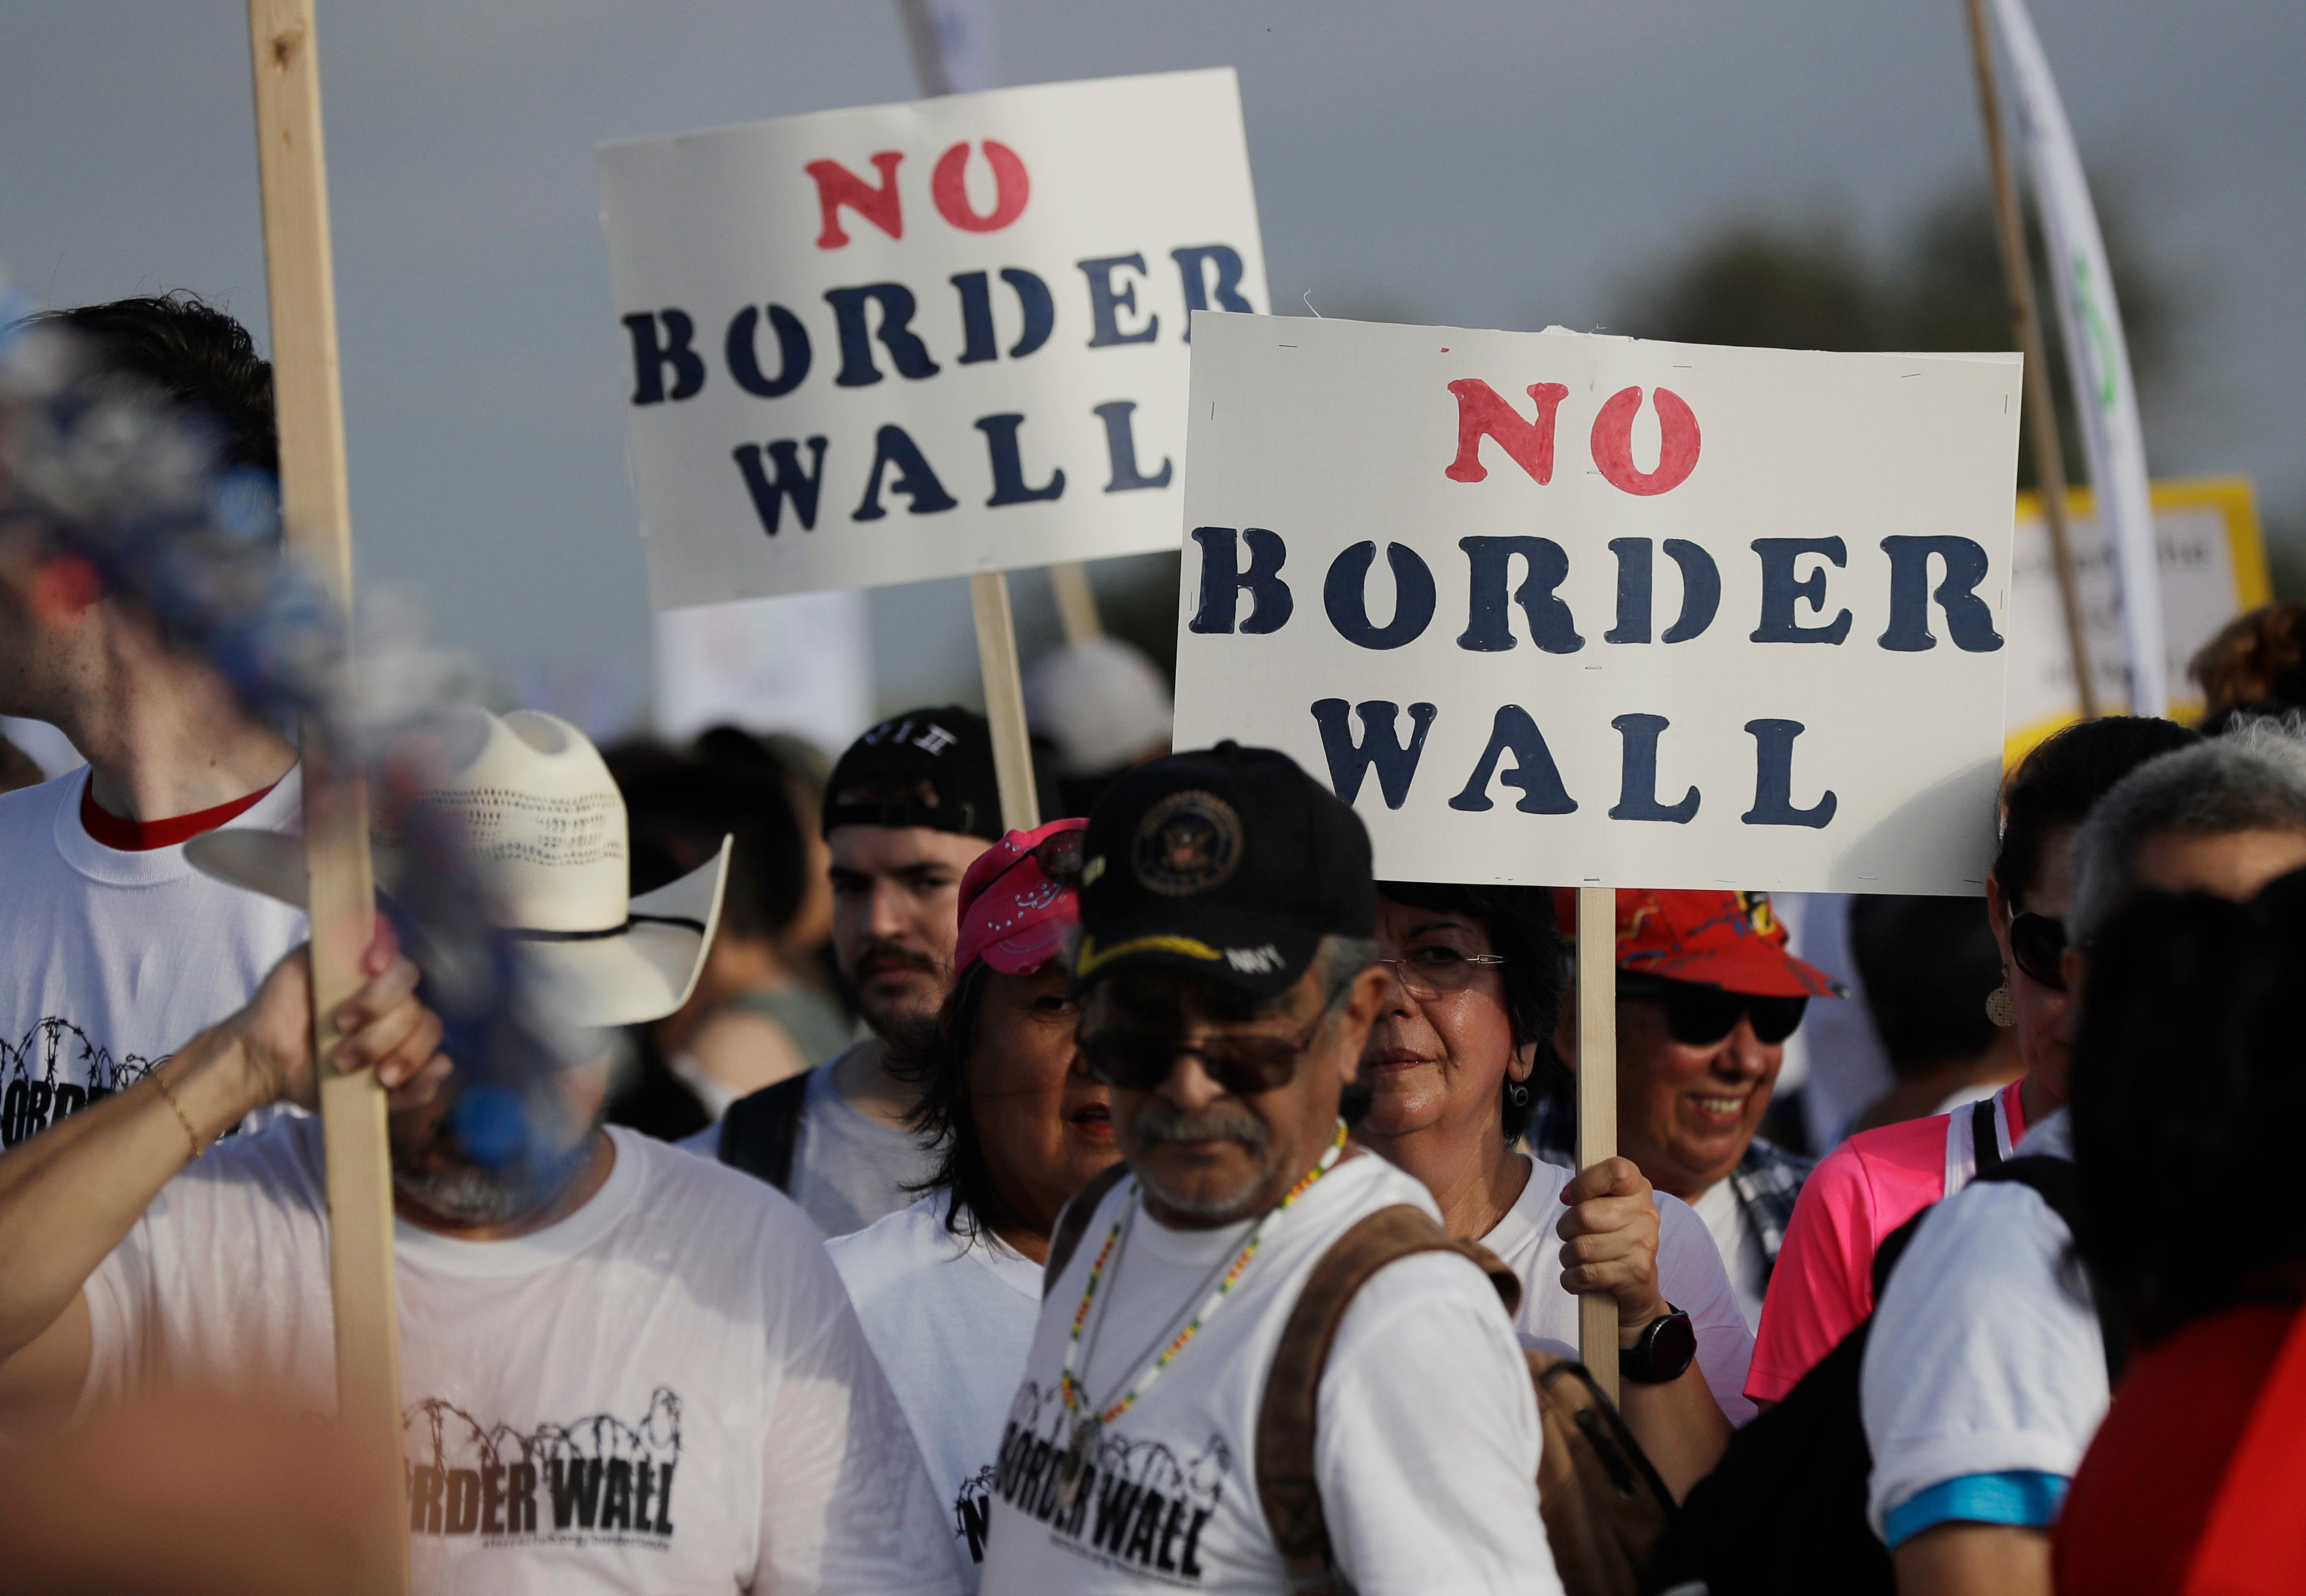 Hundreds of people march along a levee toward the Rio Grande to oppose the wall the U.S. government wants to build on the river separating Texas and Mexico, Saturday, Aug. 12, 2017, in Mission, Texas. The area would be the target of new barrier construction under the Trump administration's current plan. (AP Photo/Eric Gay)